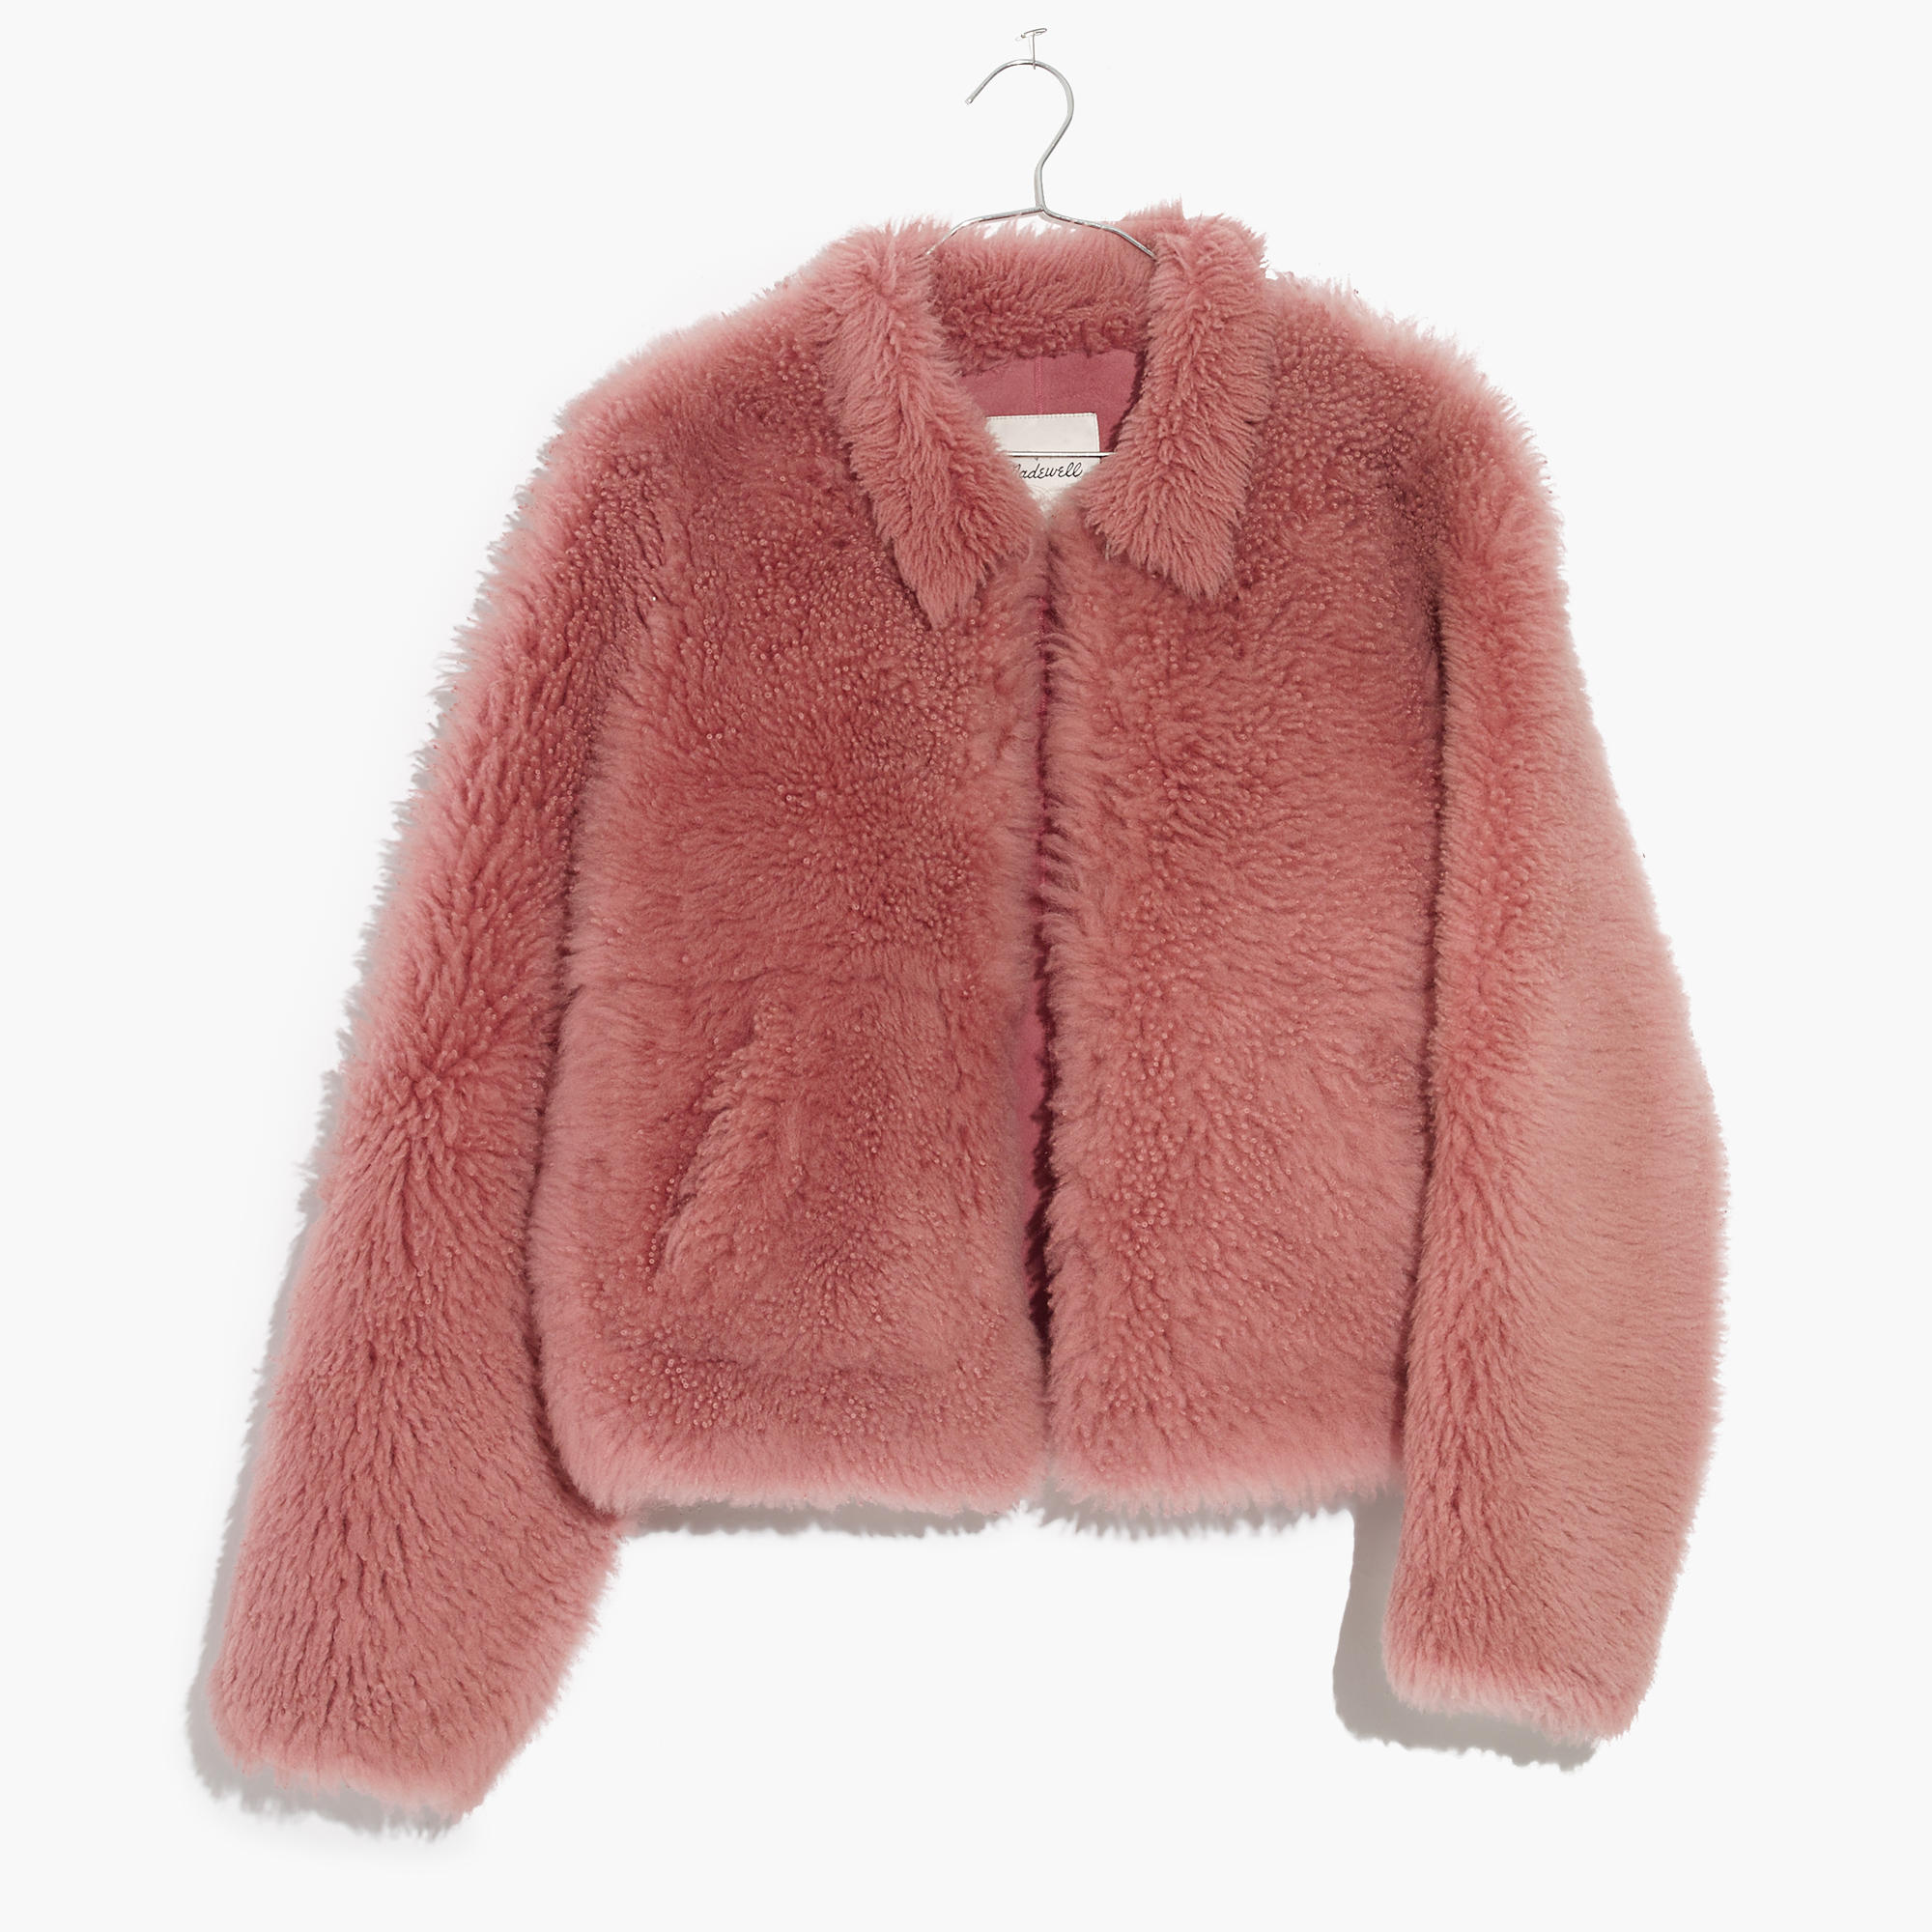 Pink Mongolian Shearling Jacket : shopmadewell leather jackets ...